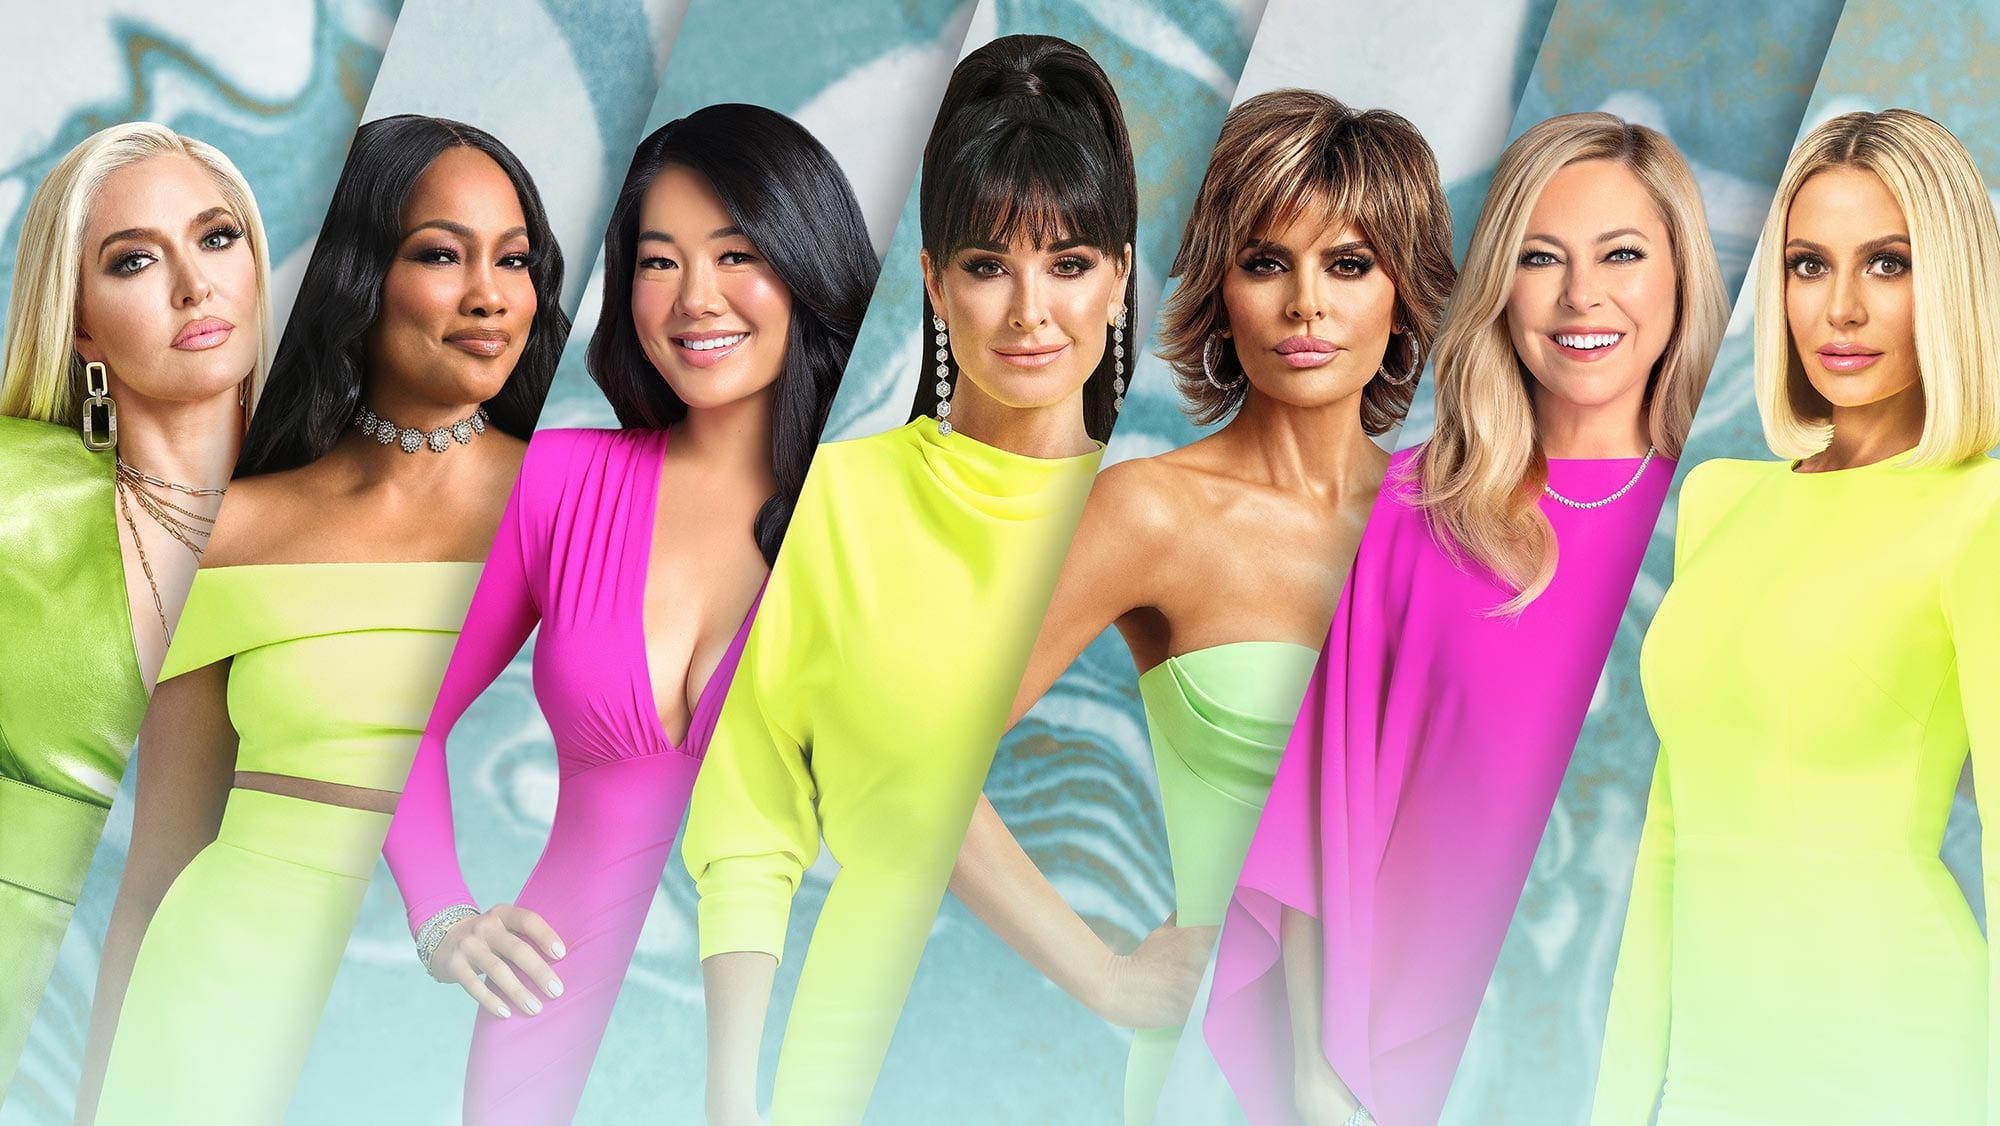 Preview: The Real Housewives of Beverly Hills Season 11 Episode 5